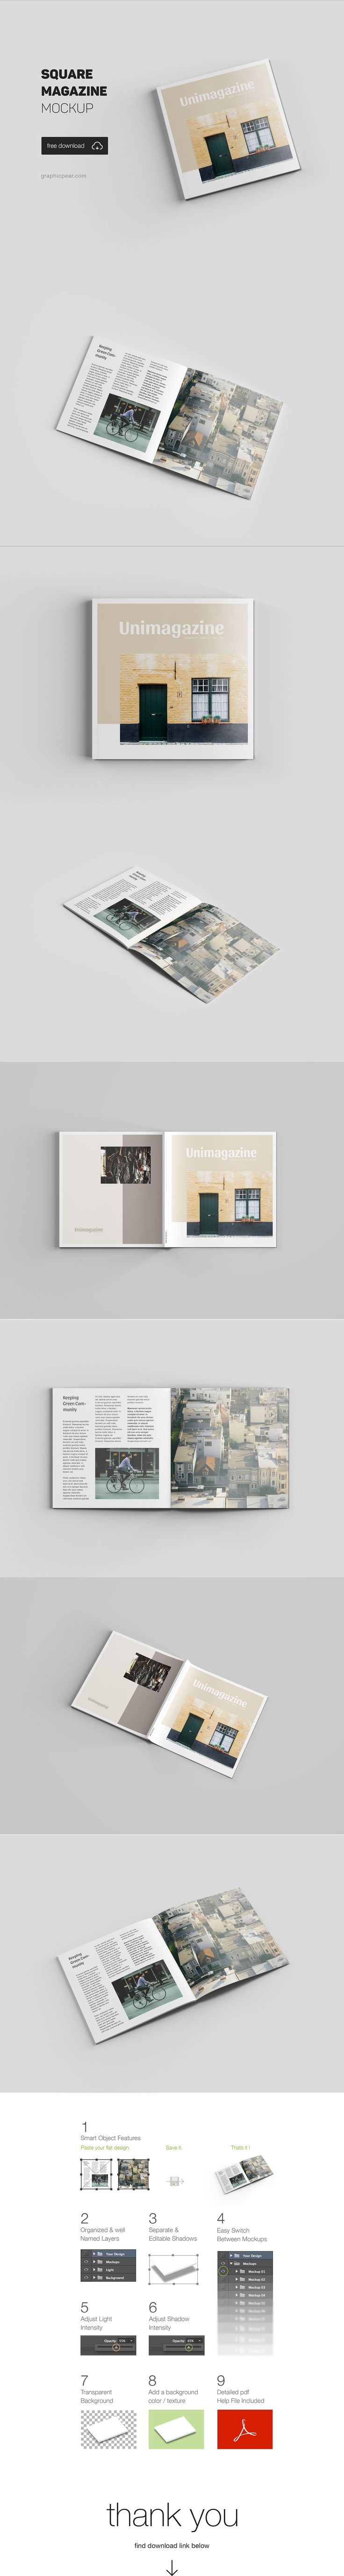 Today's freebie is premium magazine mockup template. This one in a square format.